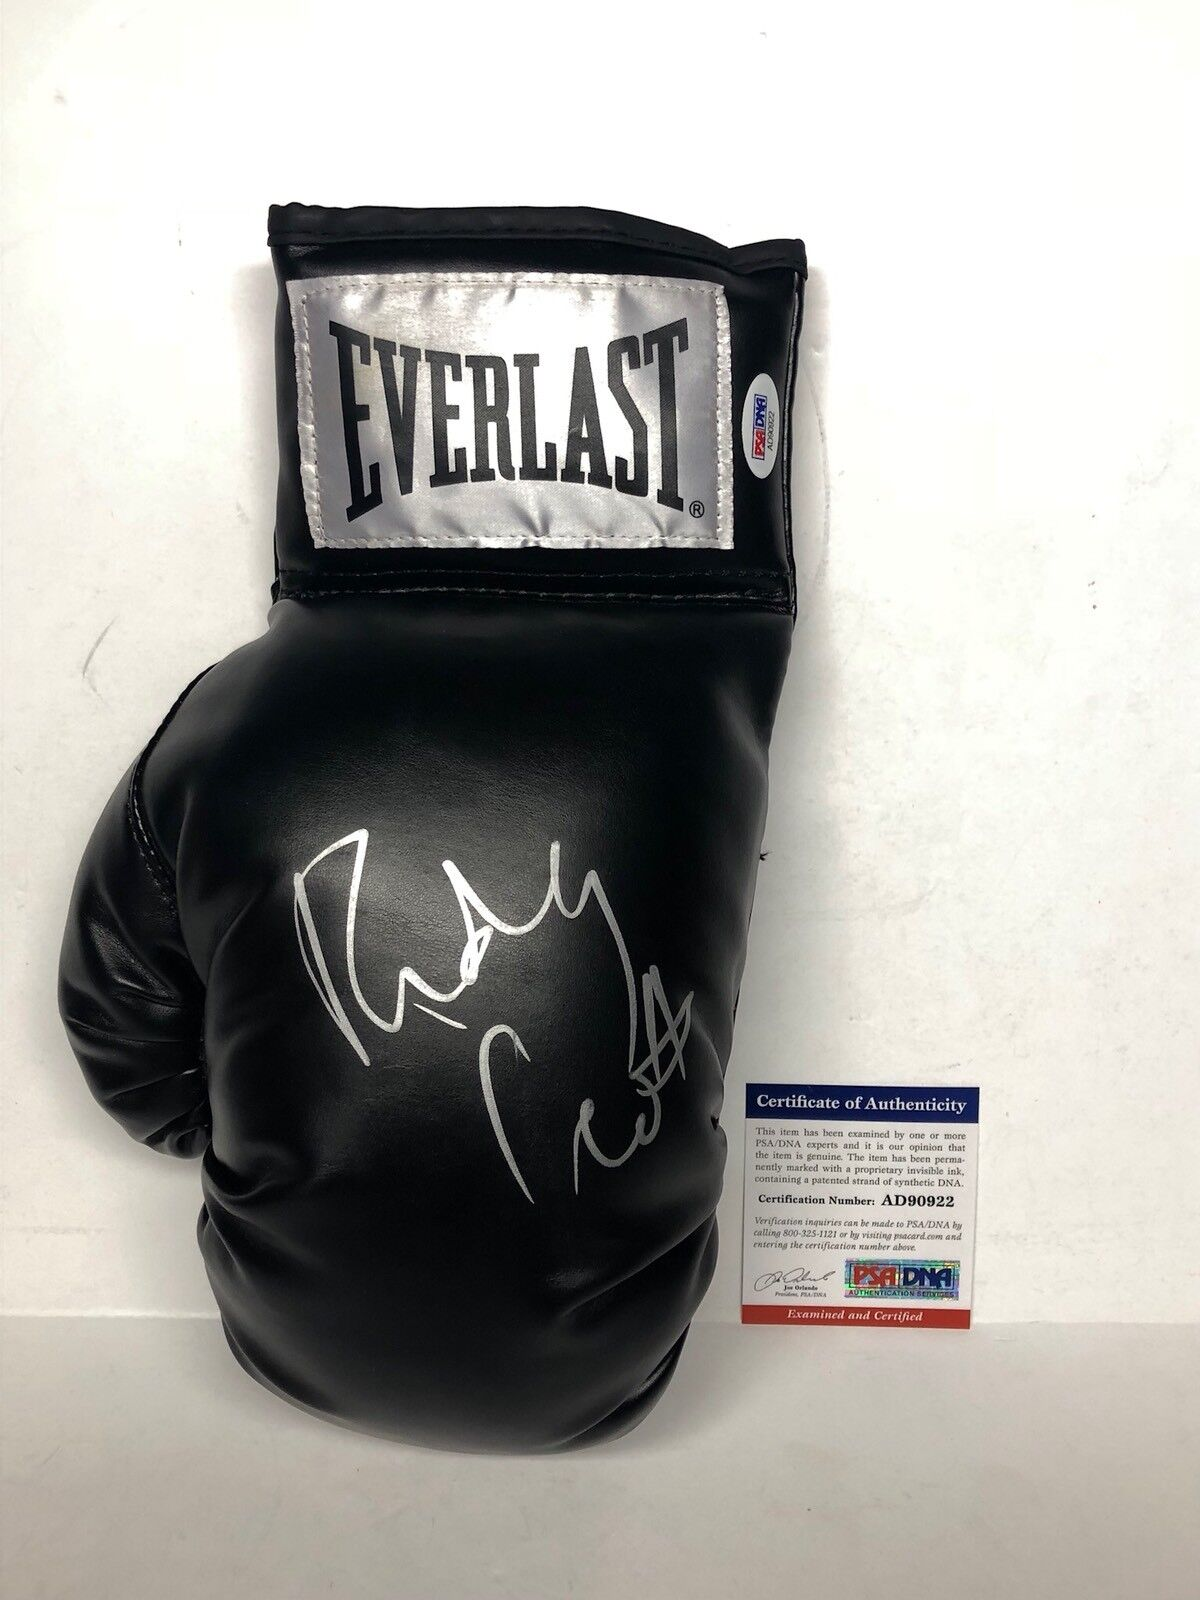 Ridley Scott Signed Boxing Glove *Film Director And Producer PSA AD90922